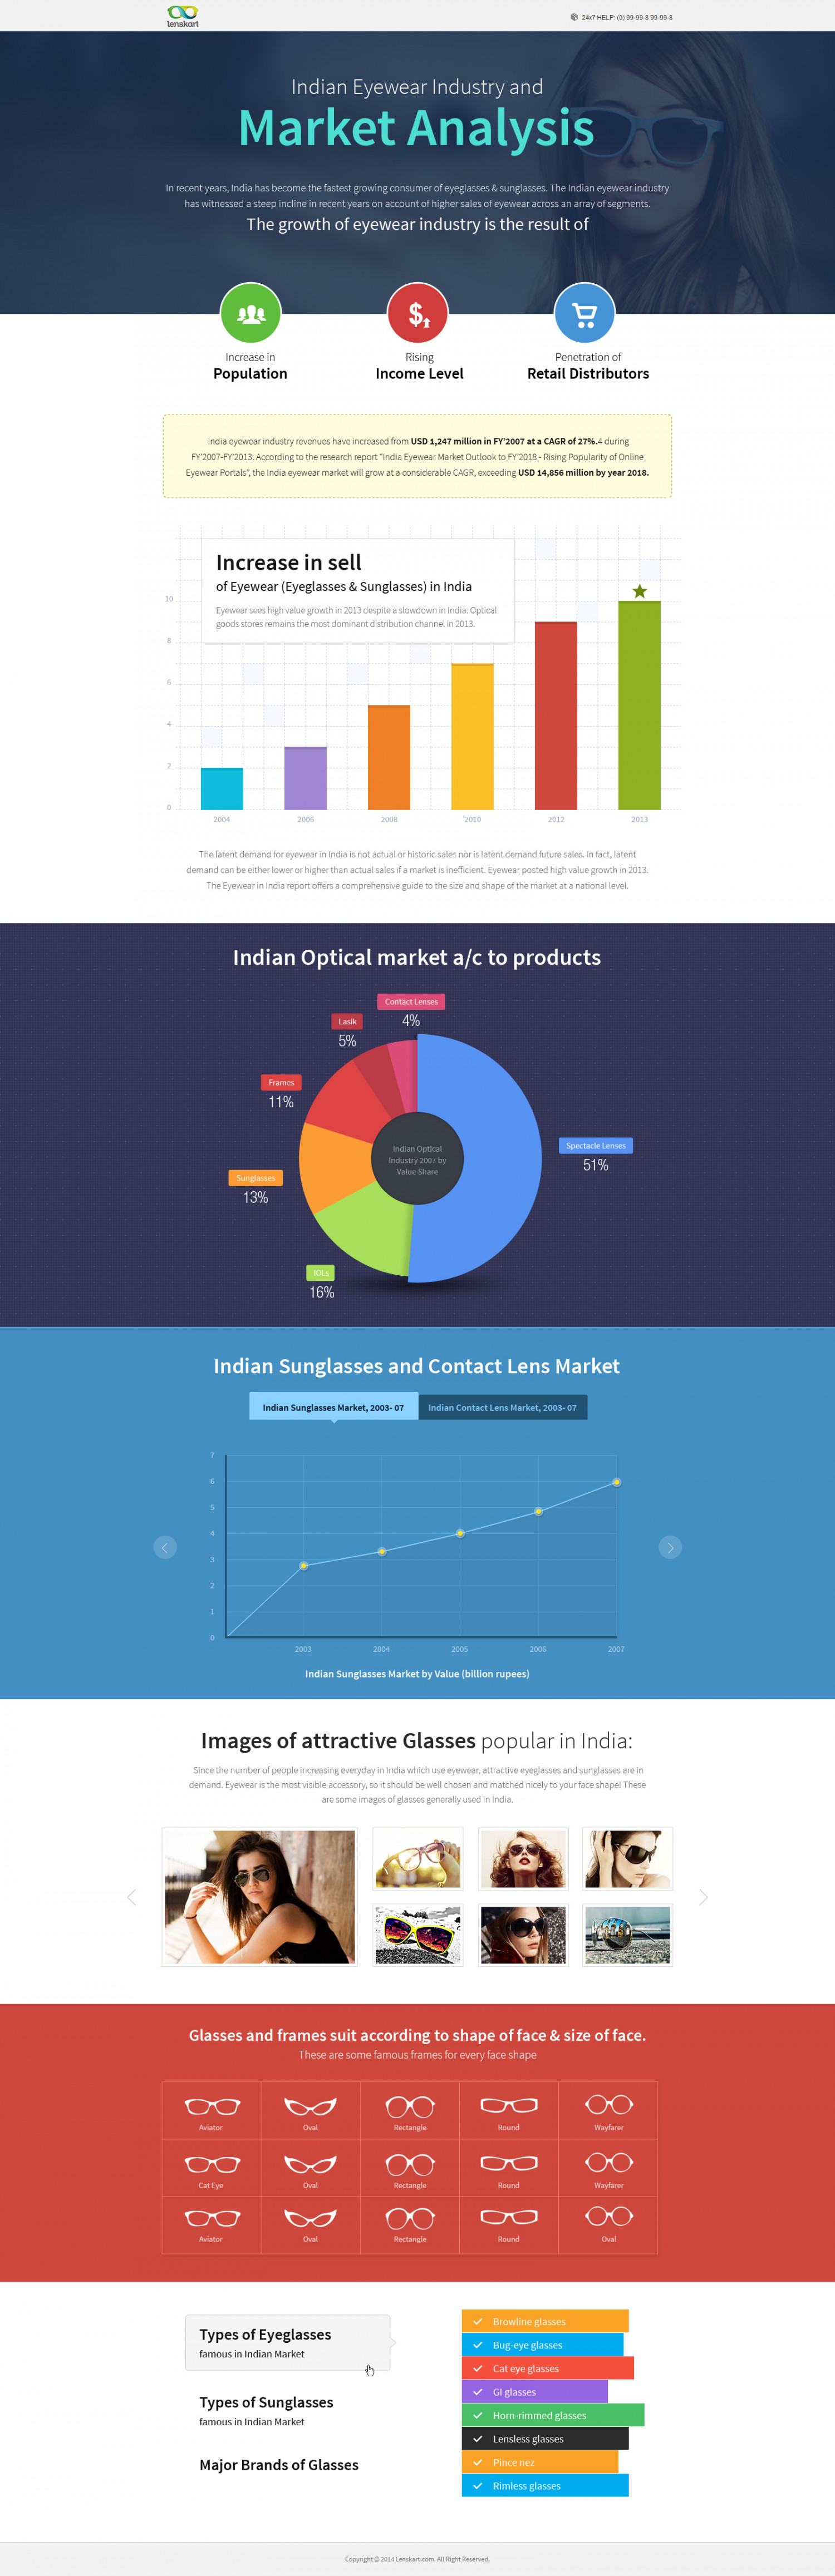 Indian Eyewear Industry Infographic